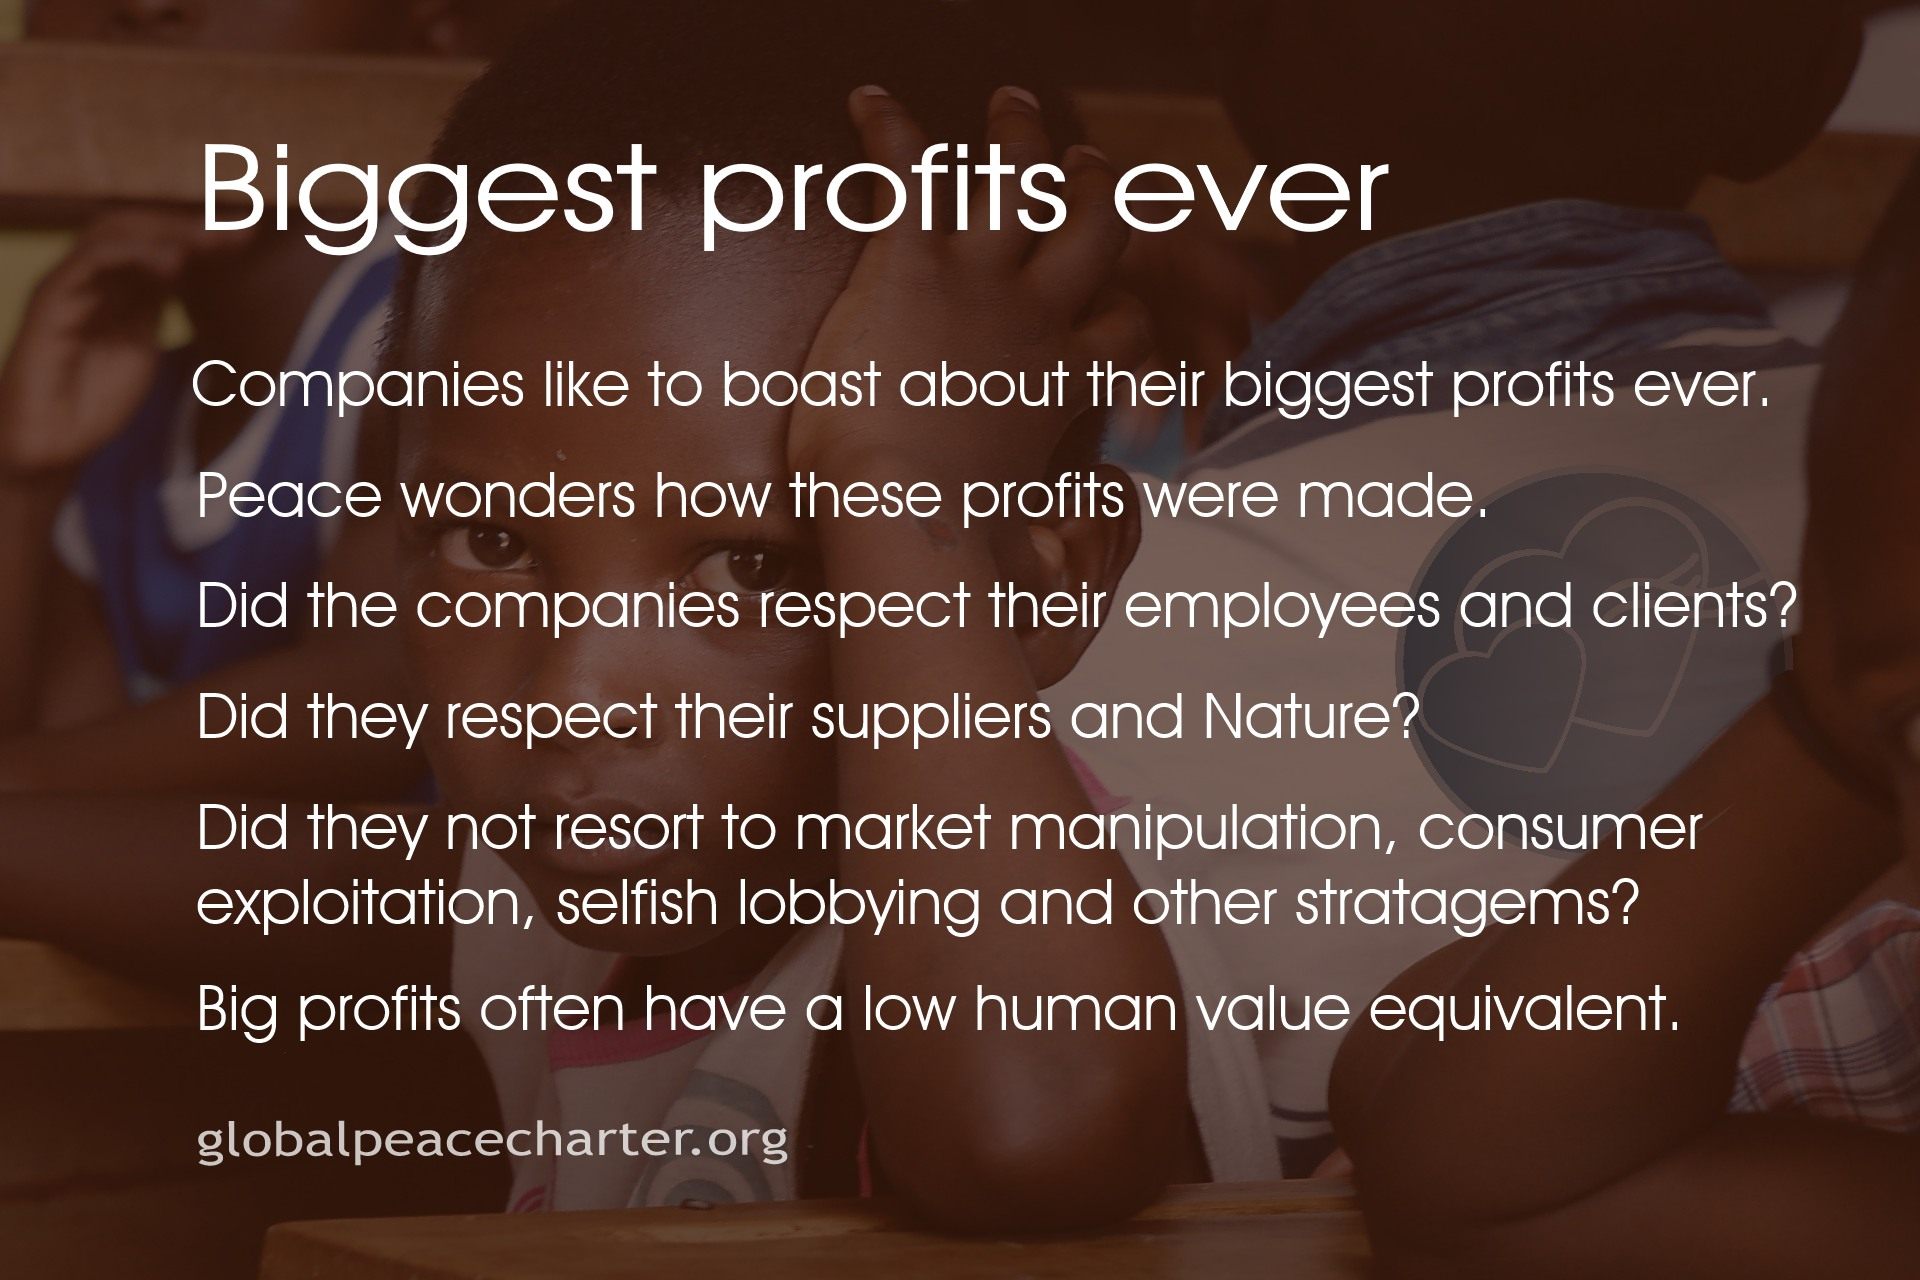 Biggest profits ever